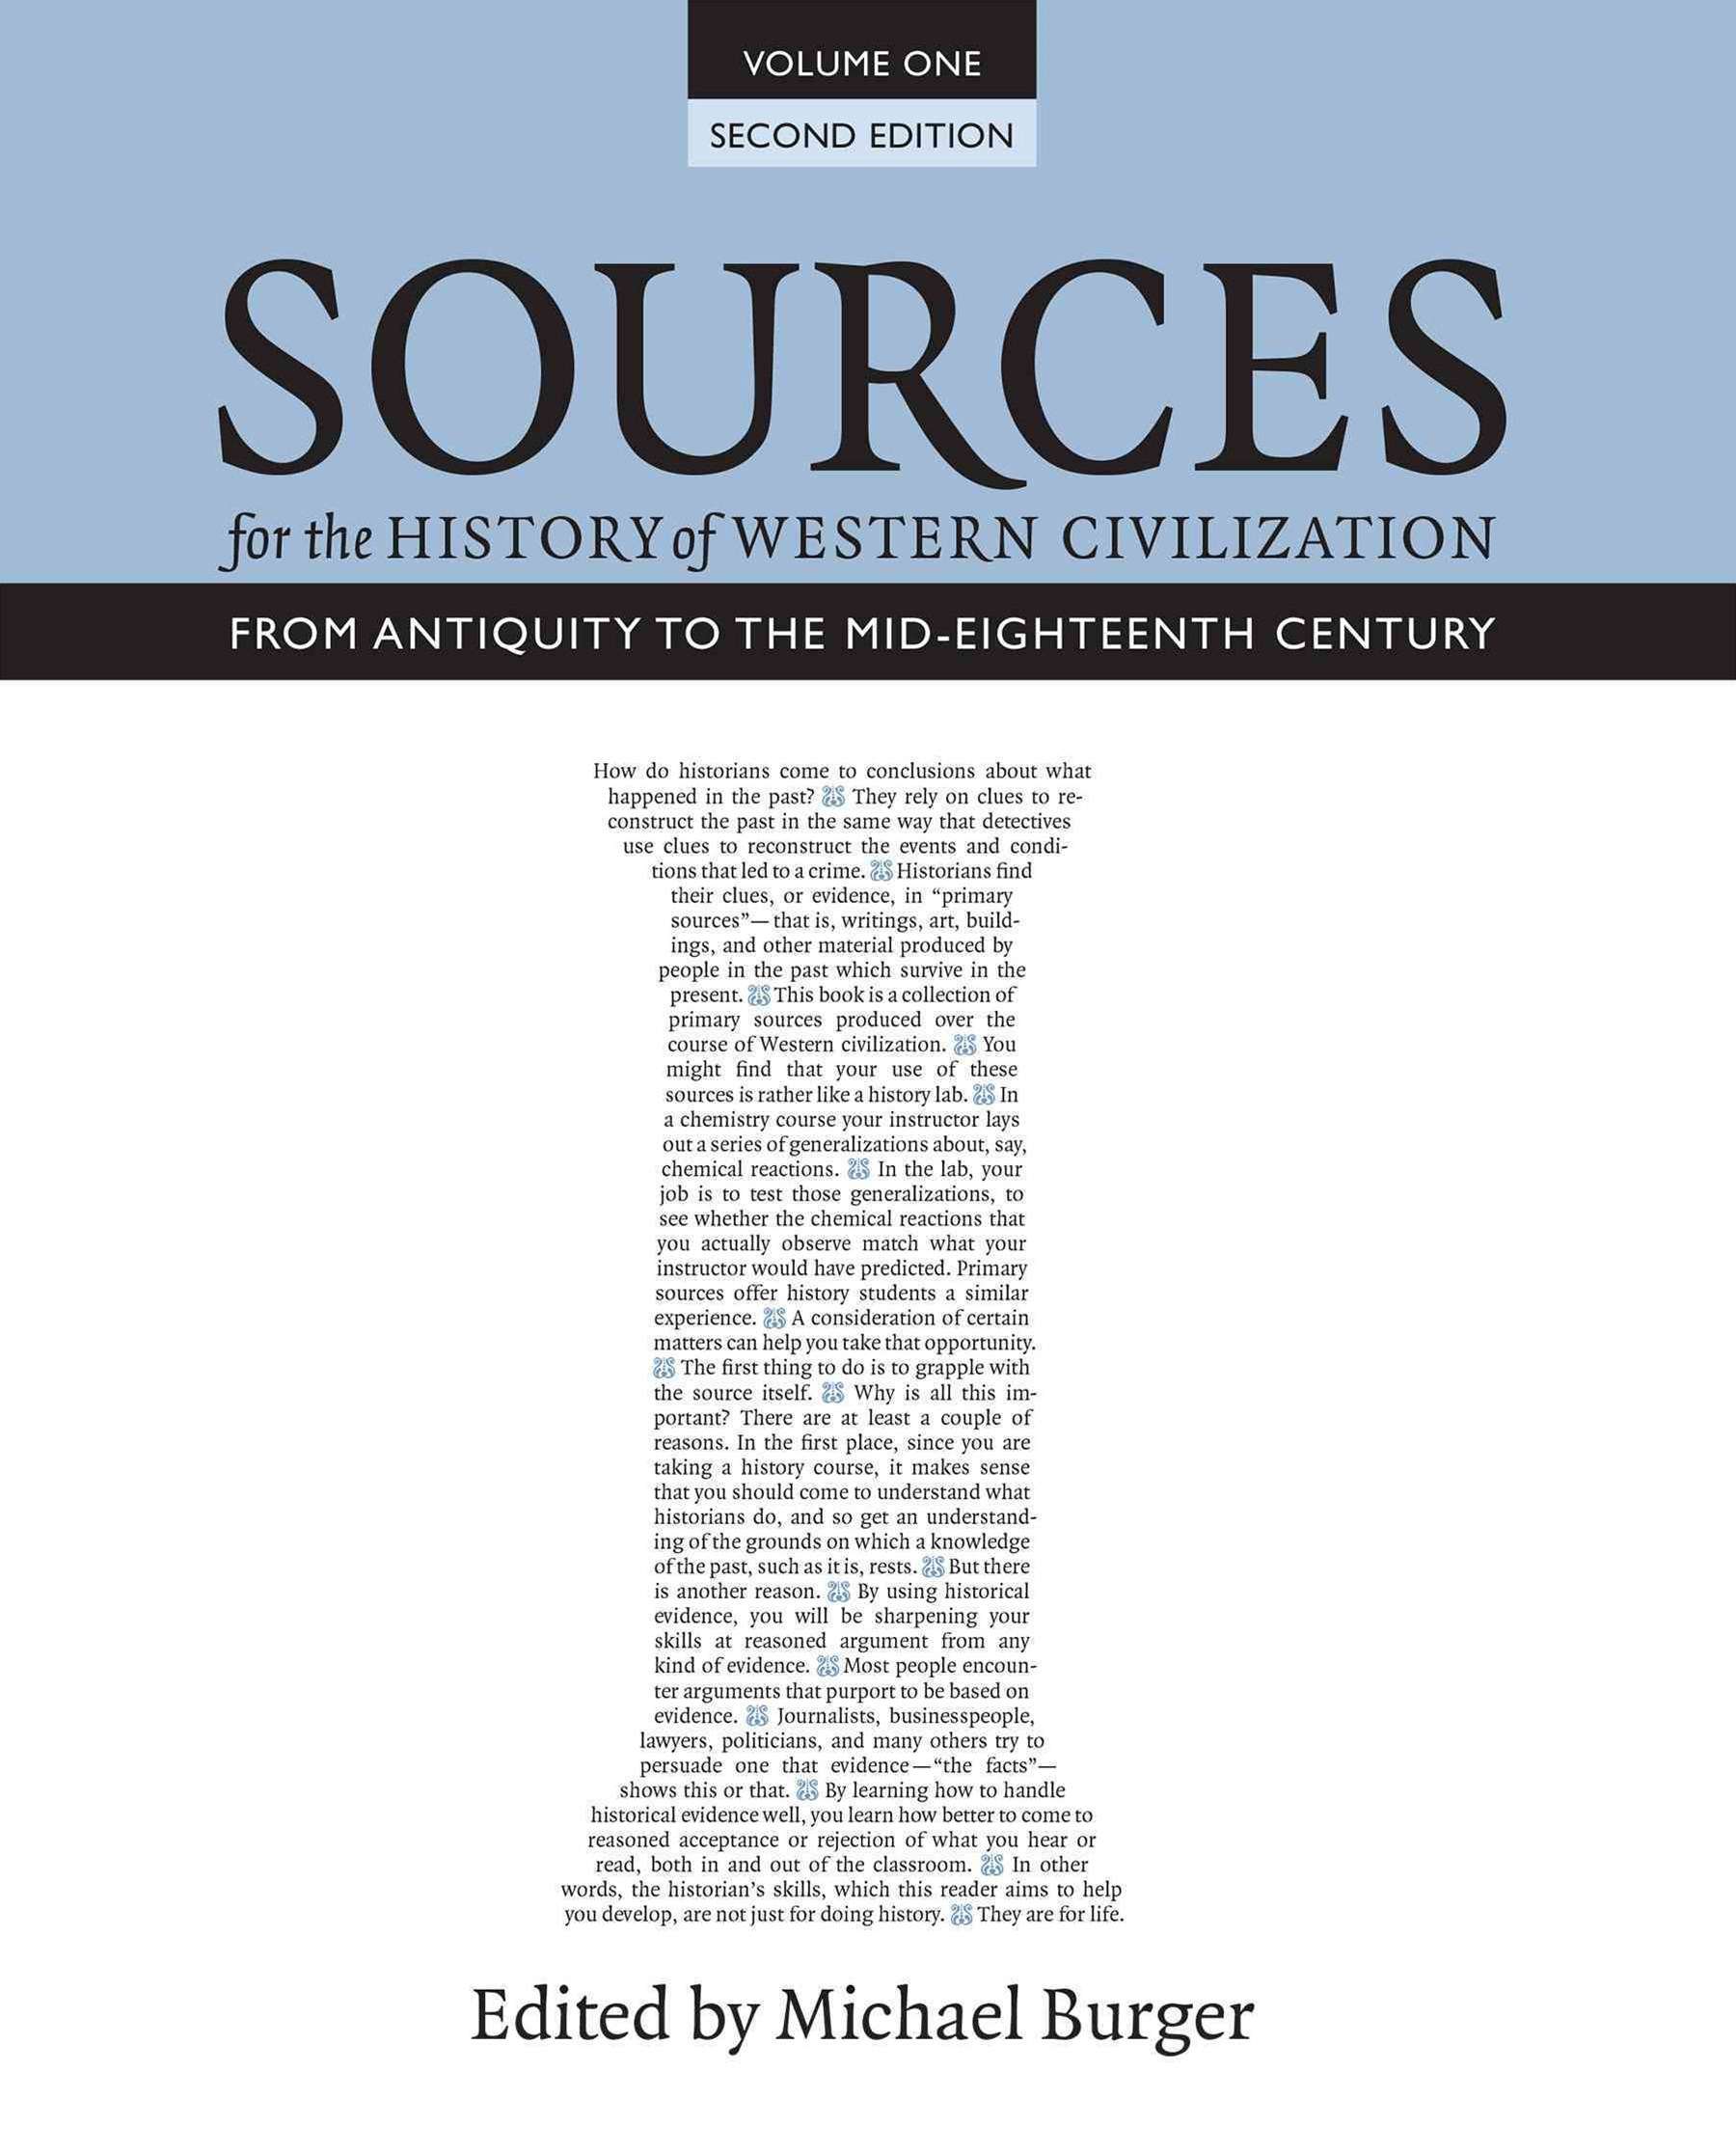 Sources for the History of Western Civilization